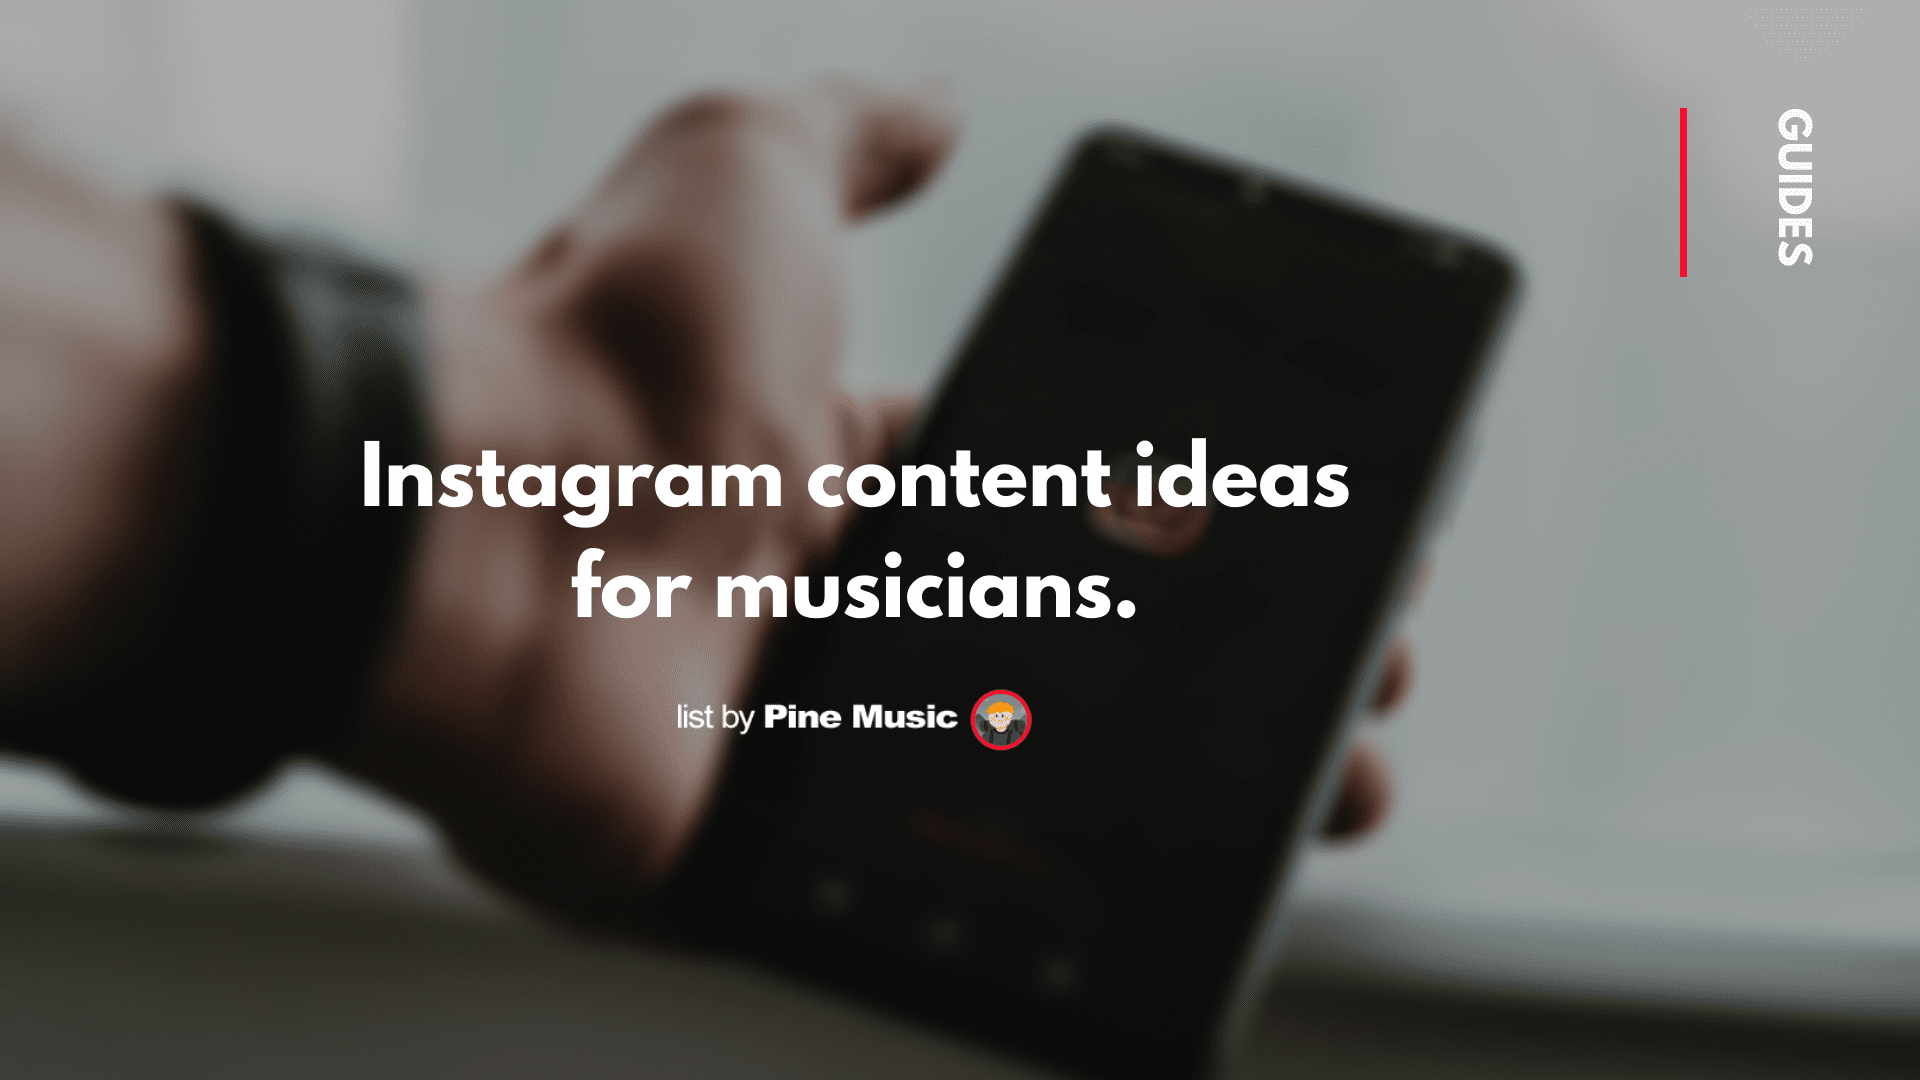 Instagram content ideas for musicians, guide by Pine Music